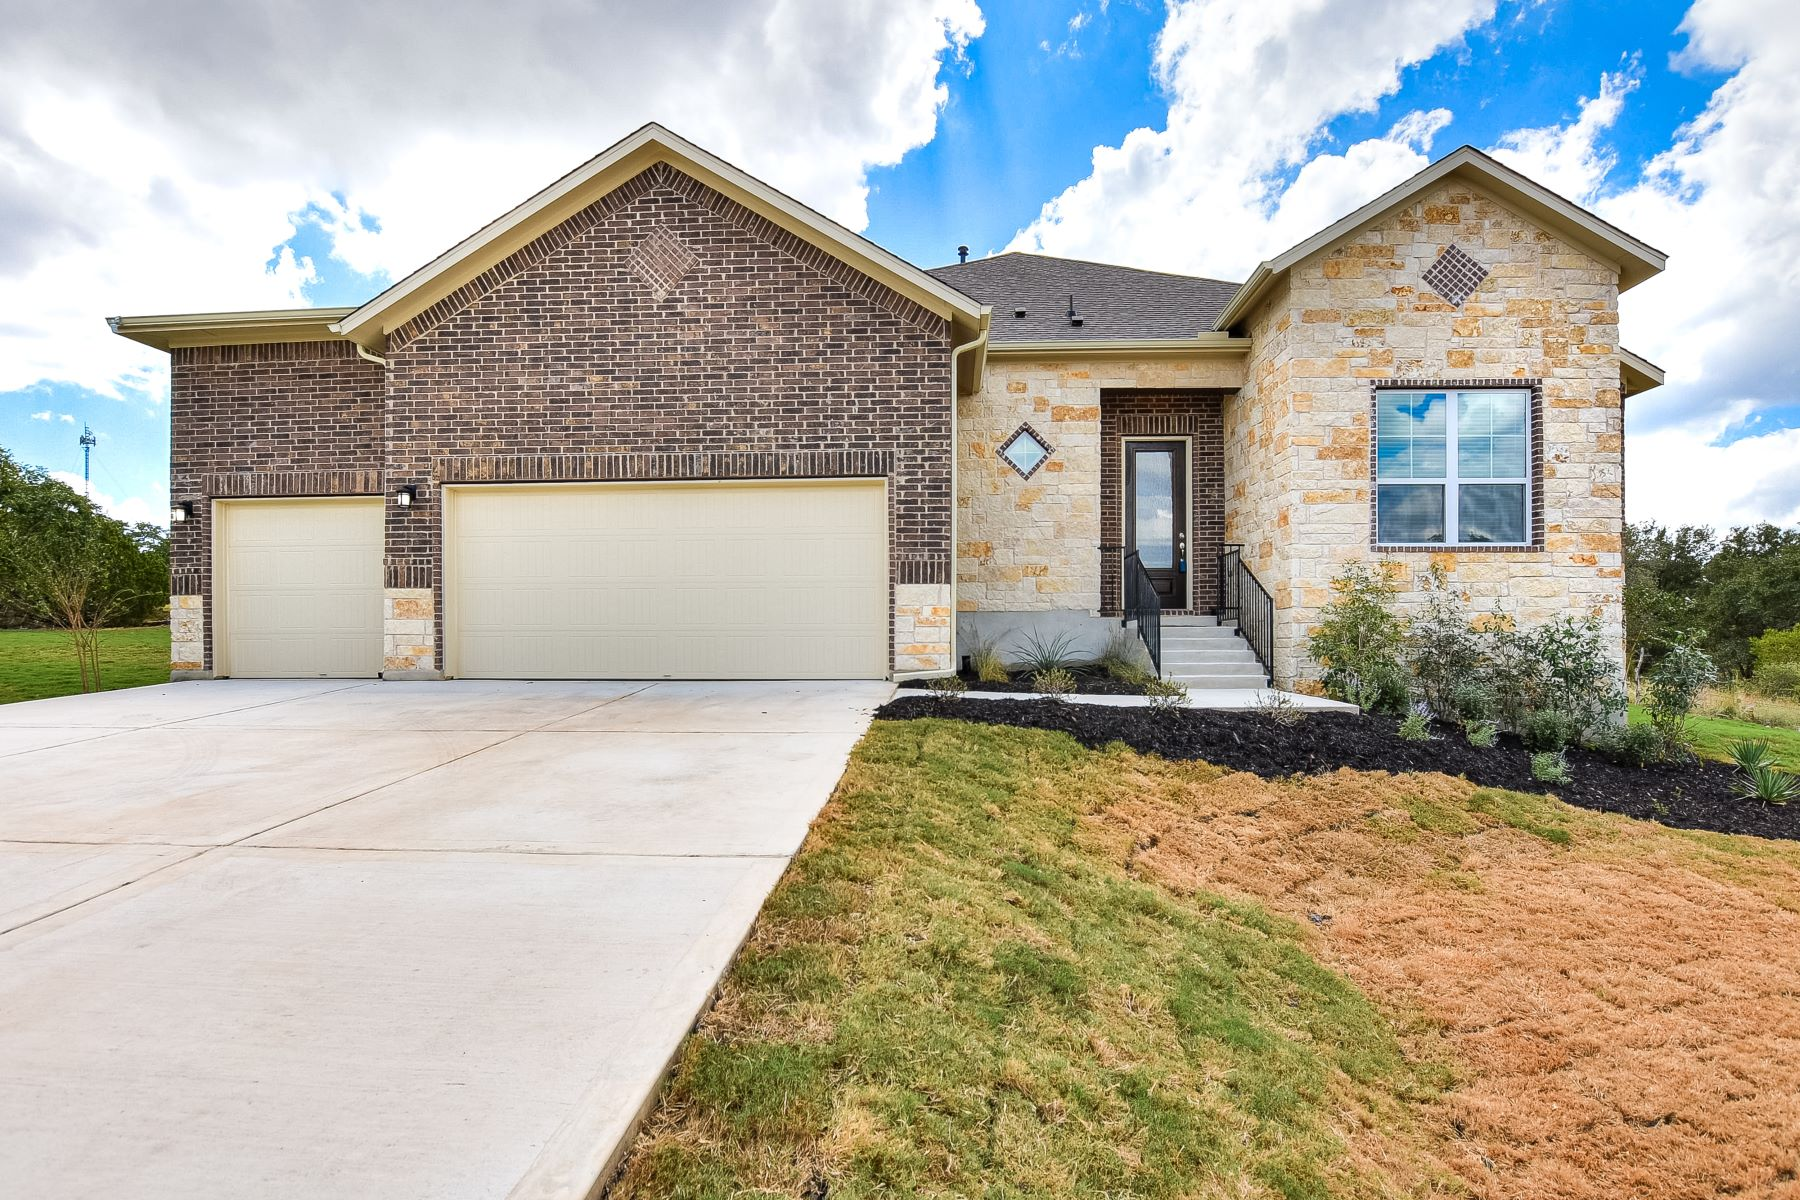 Single Family Homes for Sale at 1379 Bearkat Canyon Drive, Dripping Springs, TX 78620 1379 Bearkat Canyon Drive Dripping Springs, Texas 78620 United States